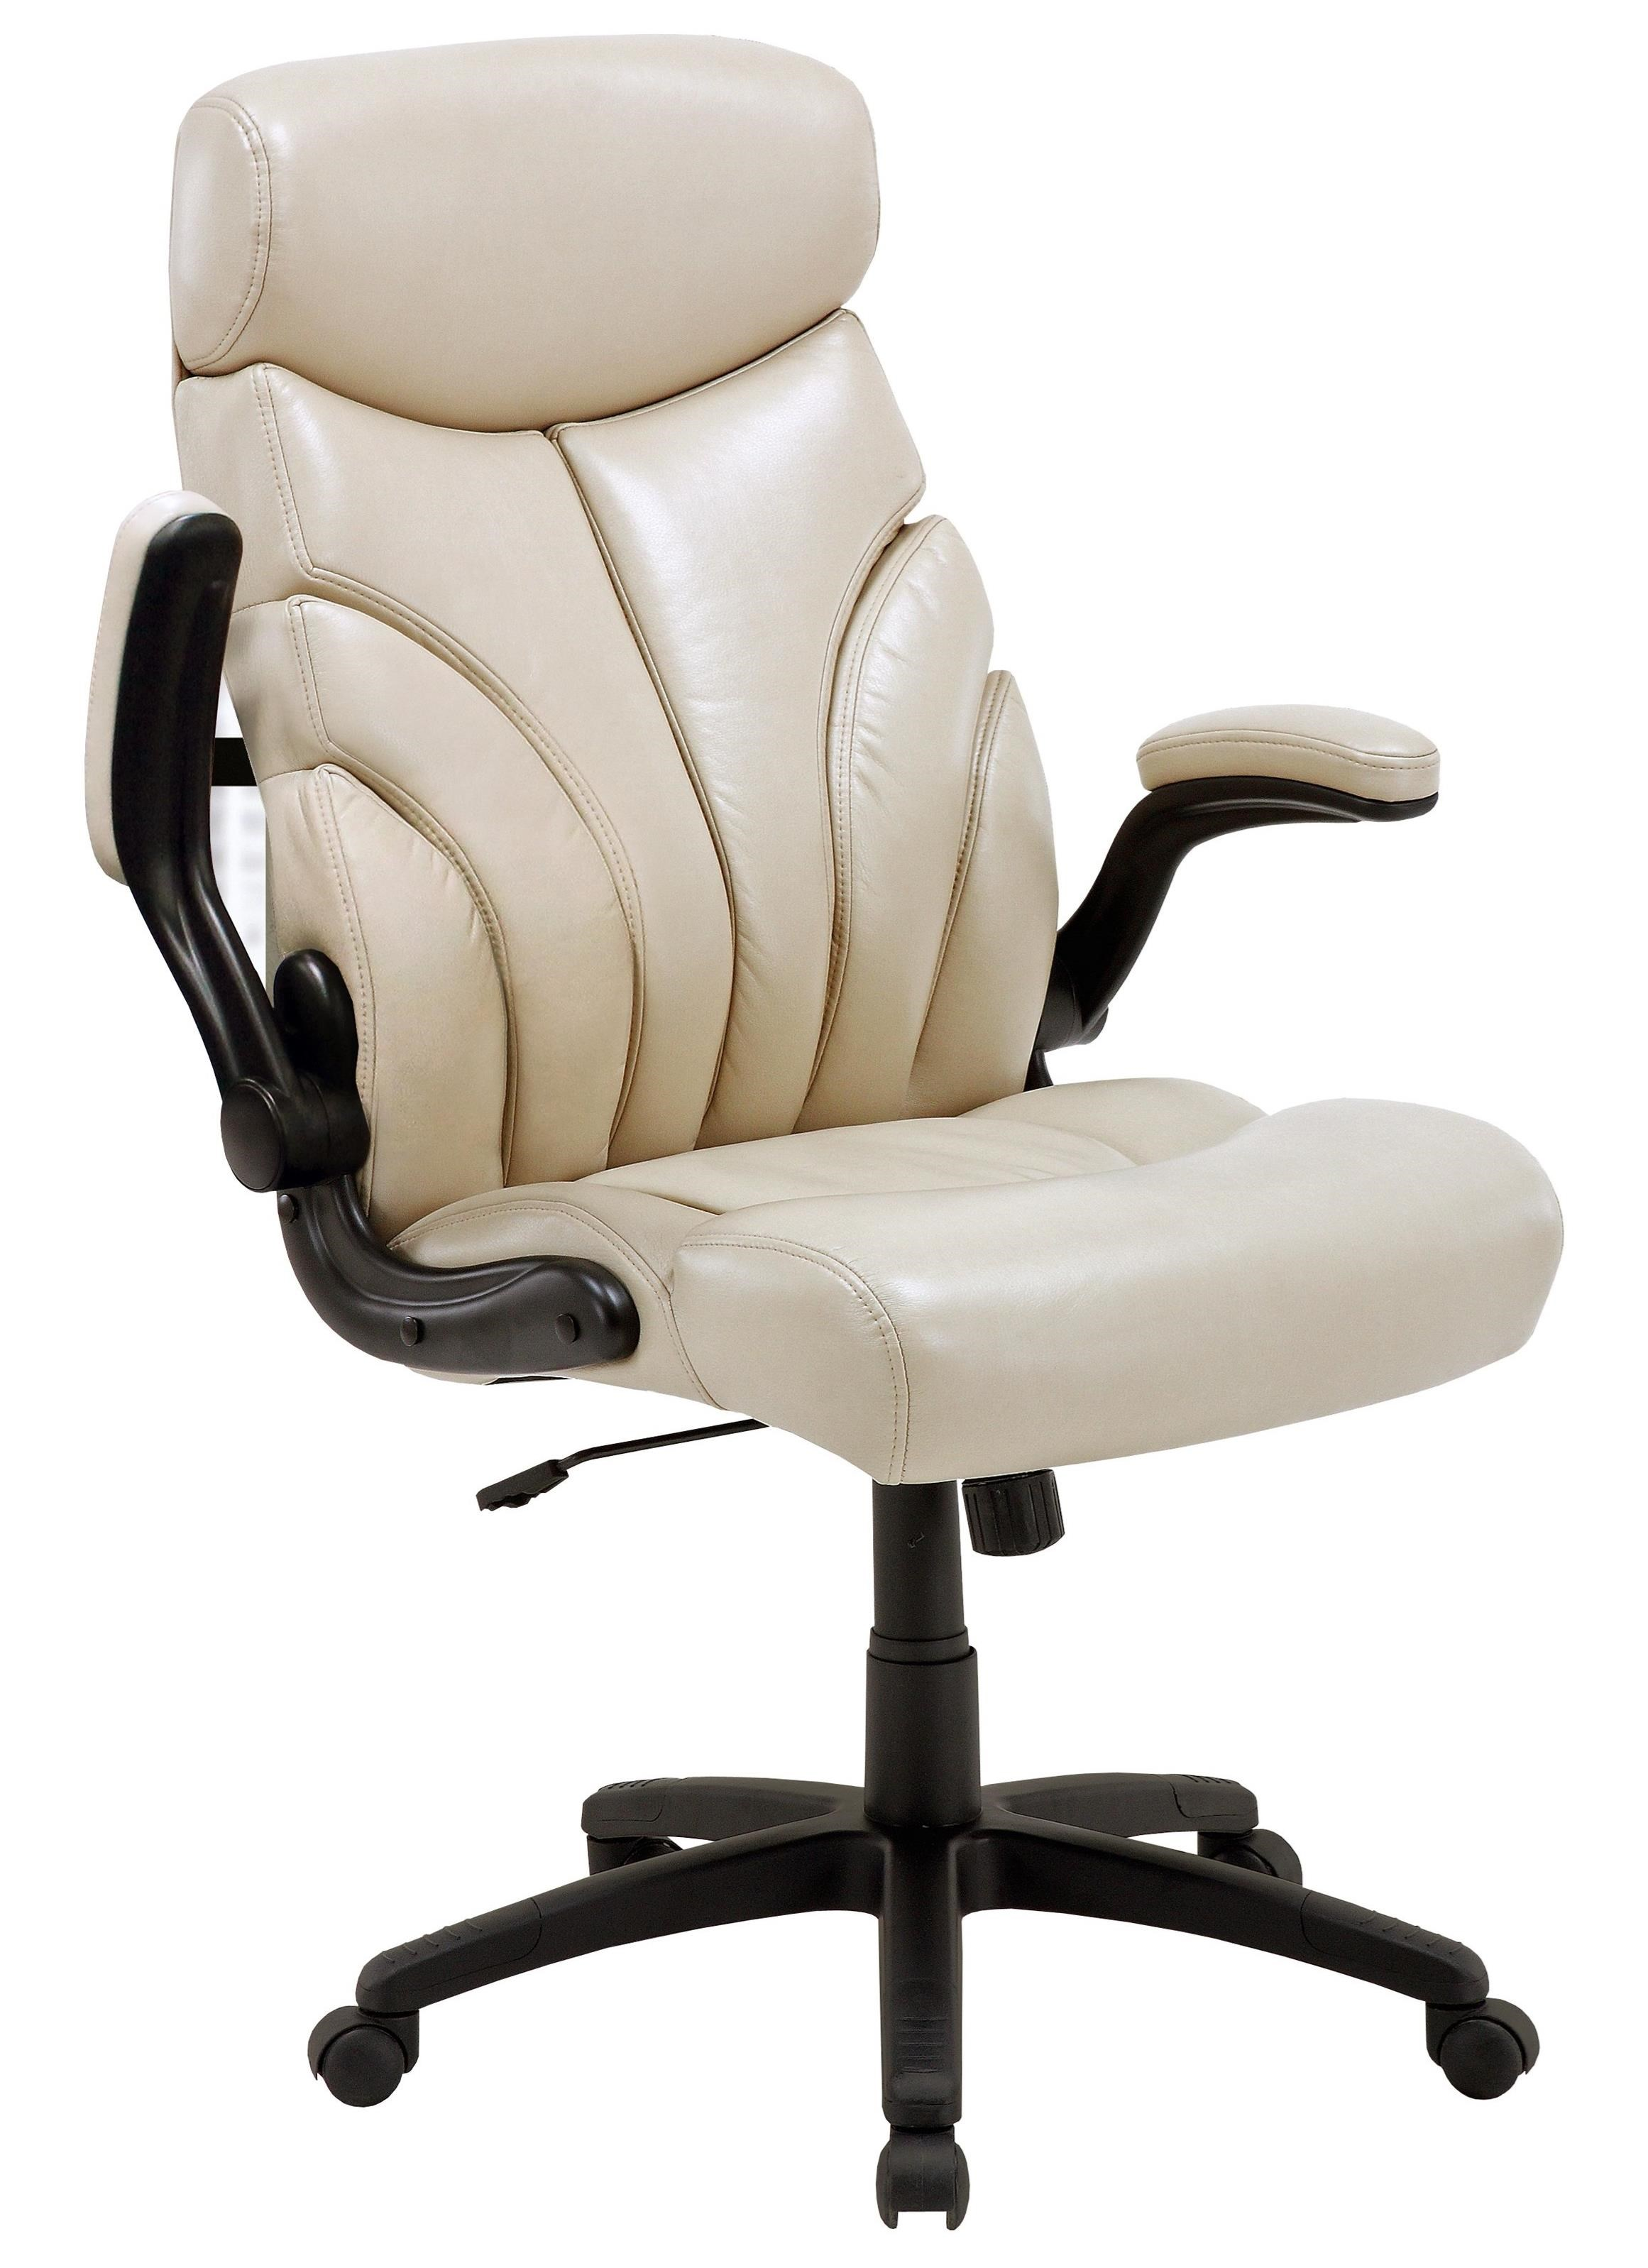 Parker Living Desk Chairs Desk Chair - Item Number: DC-205-CRE